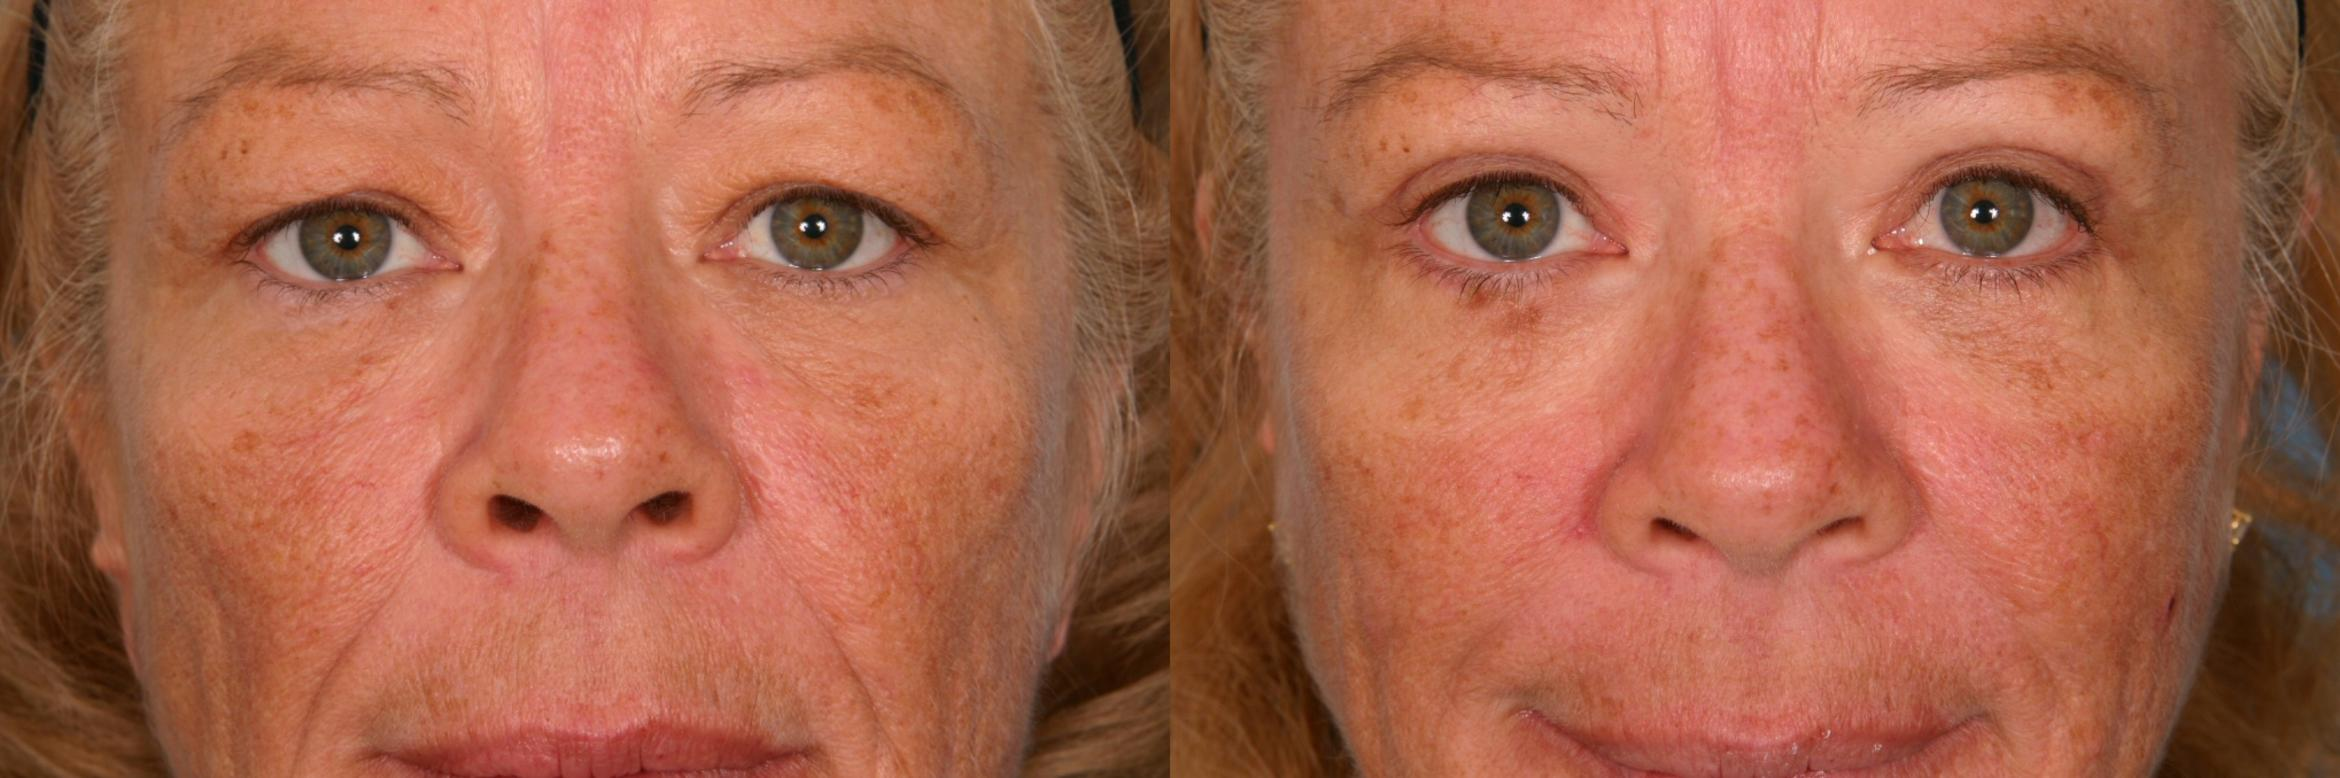 Brow Lift Case 54 Before & After View #1 | Naples, FL | Kent V. Hasen, M.D.